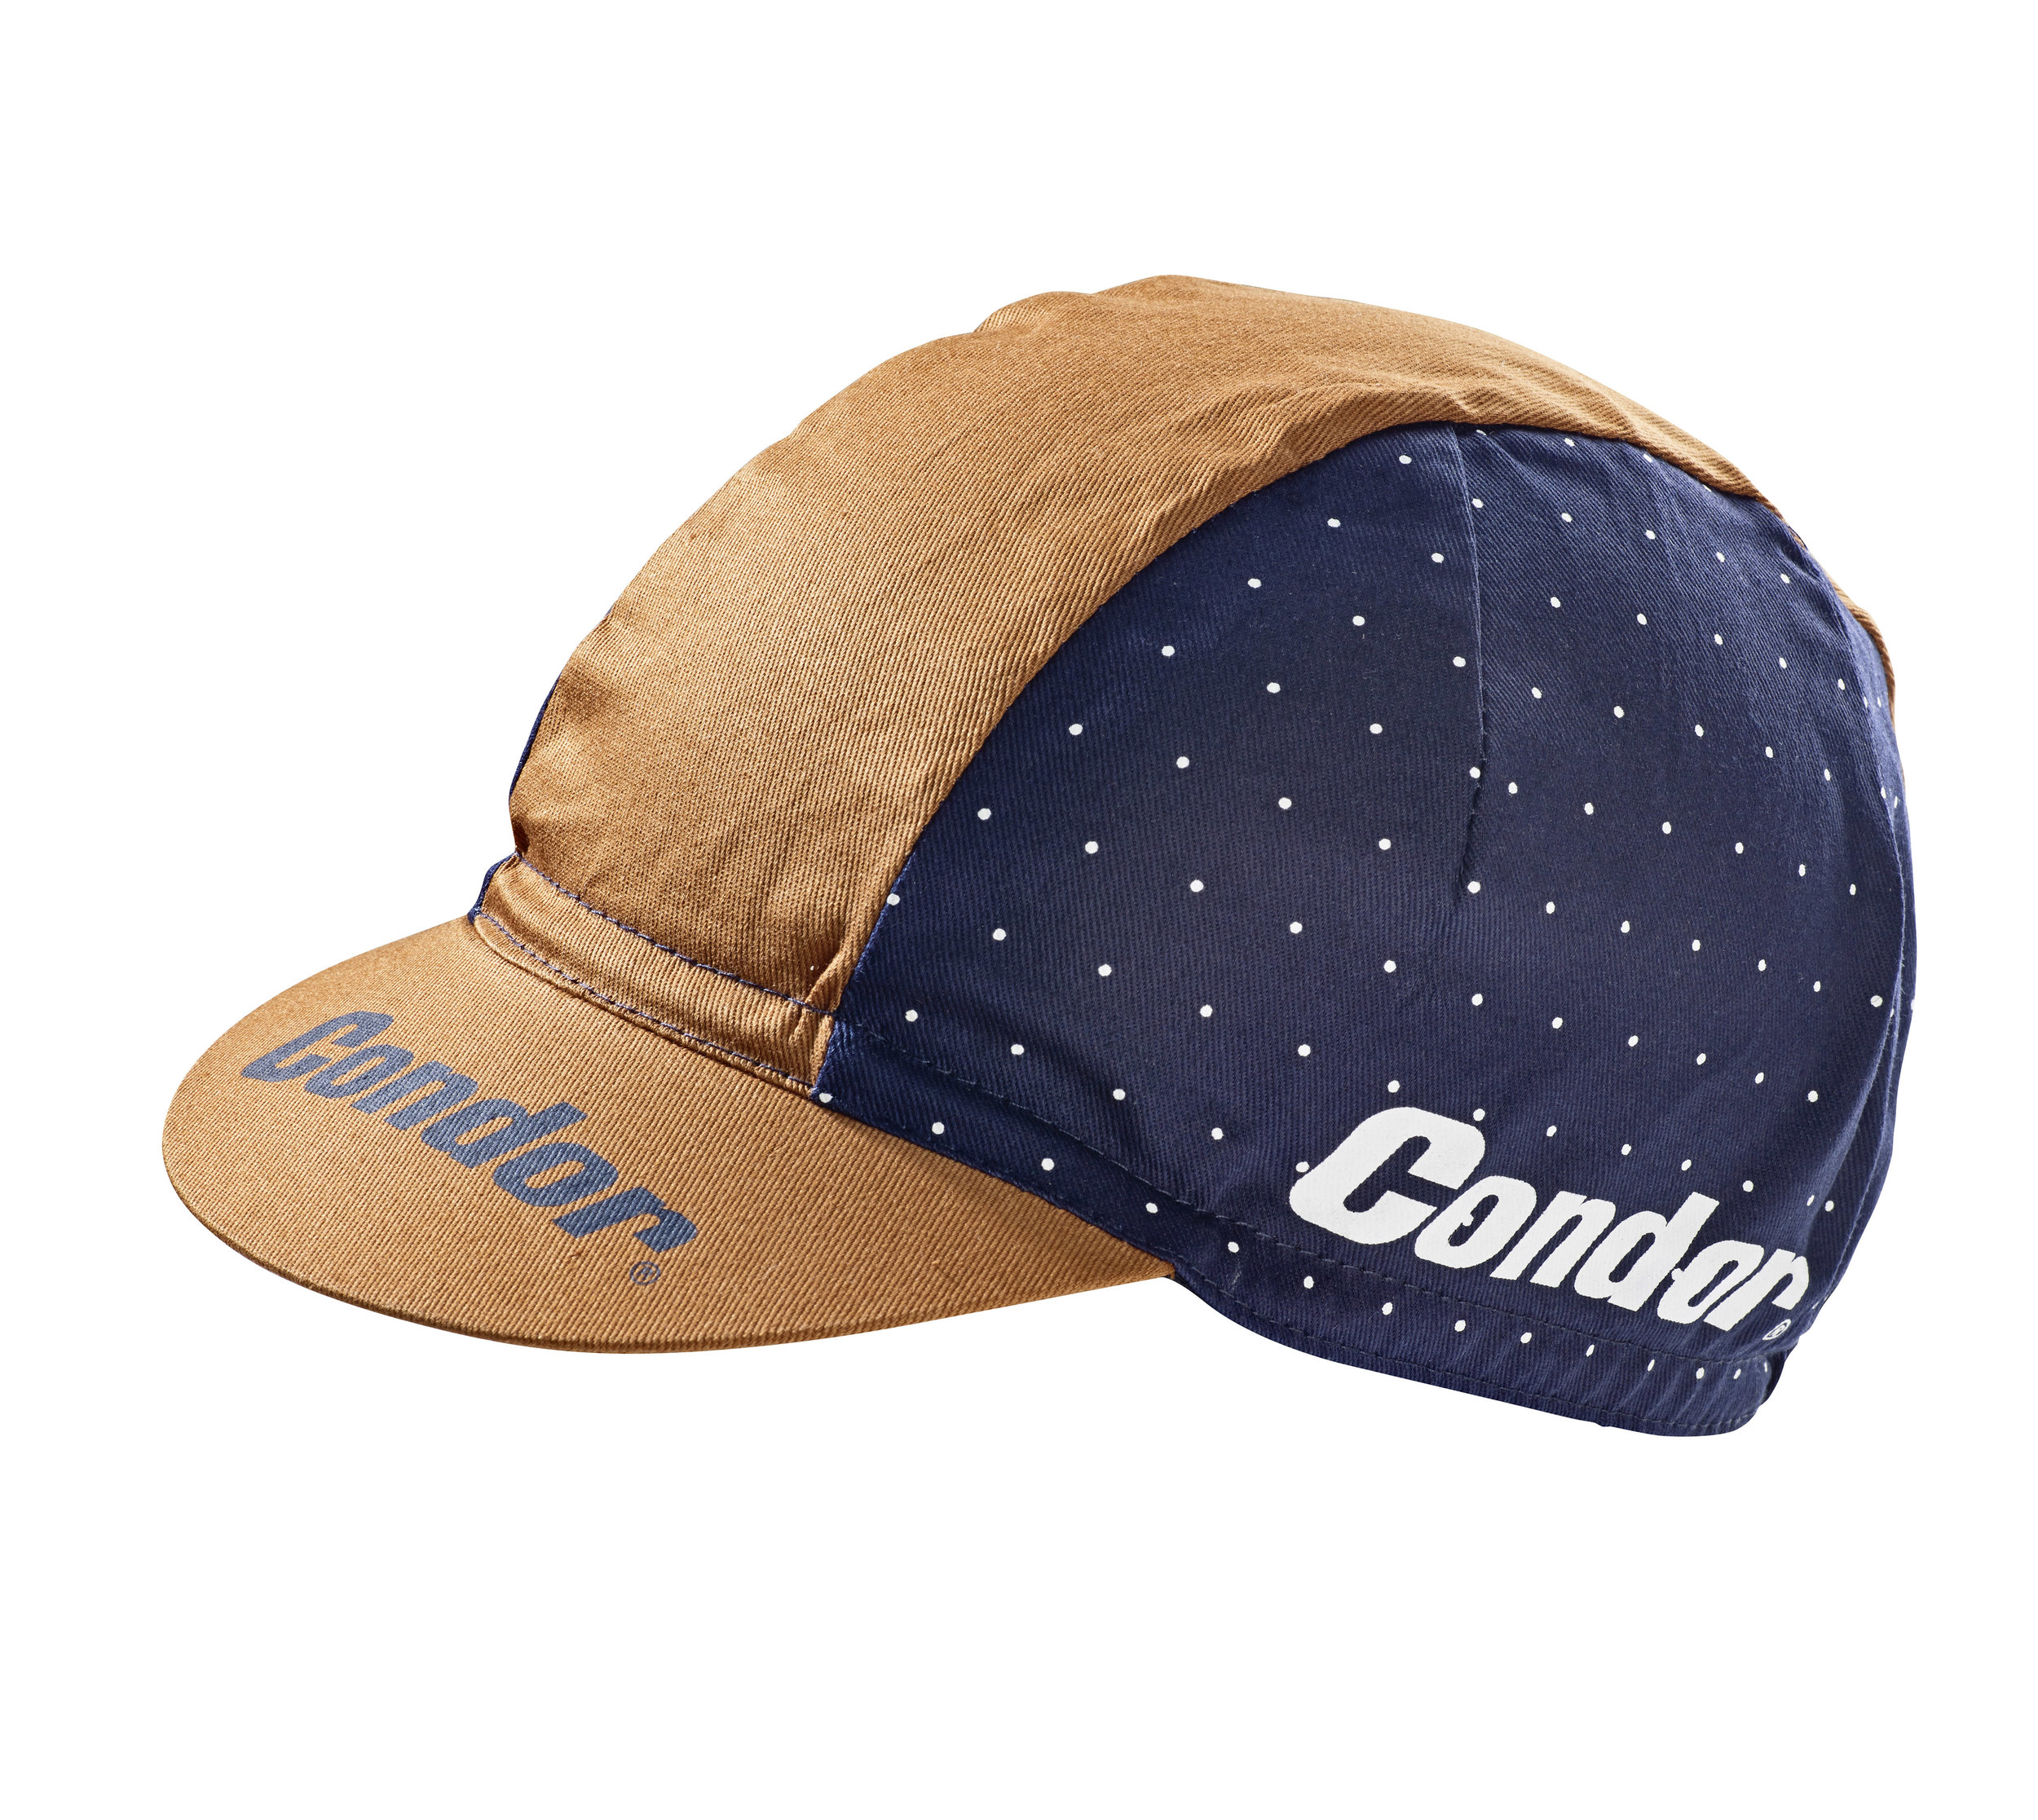 CONDOR 2017 Dots Cap Peak DOWN 57348.jpg